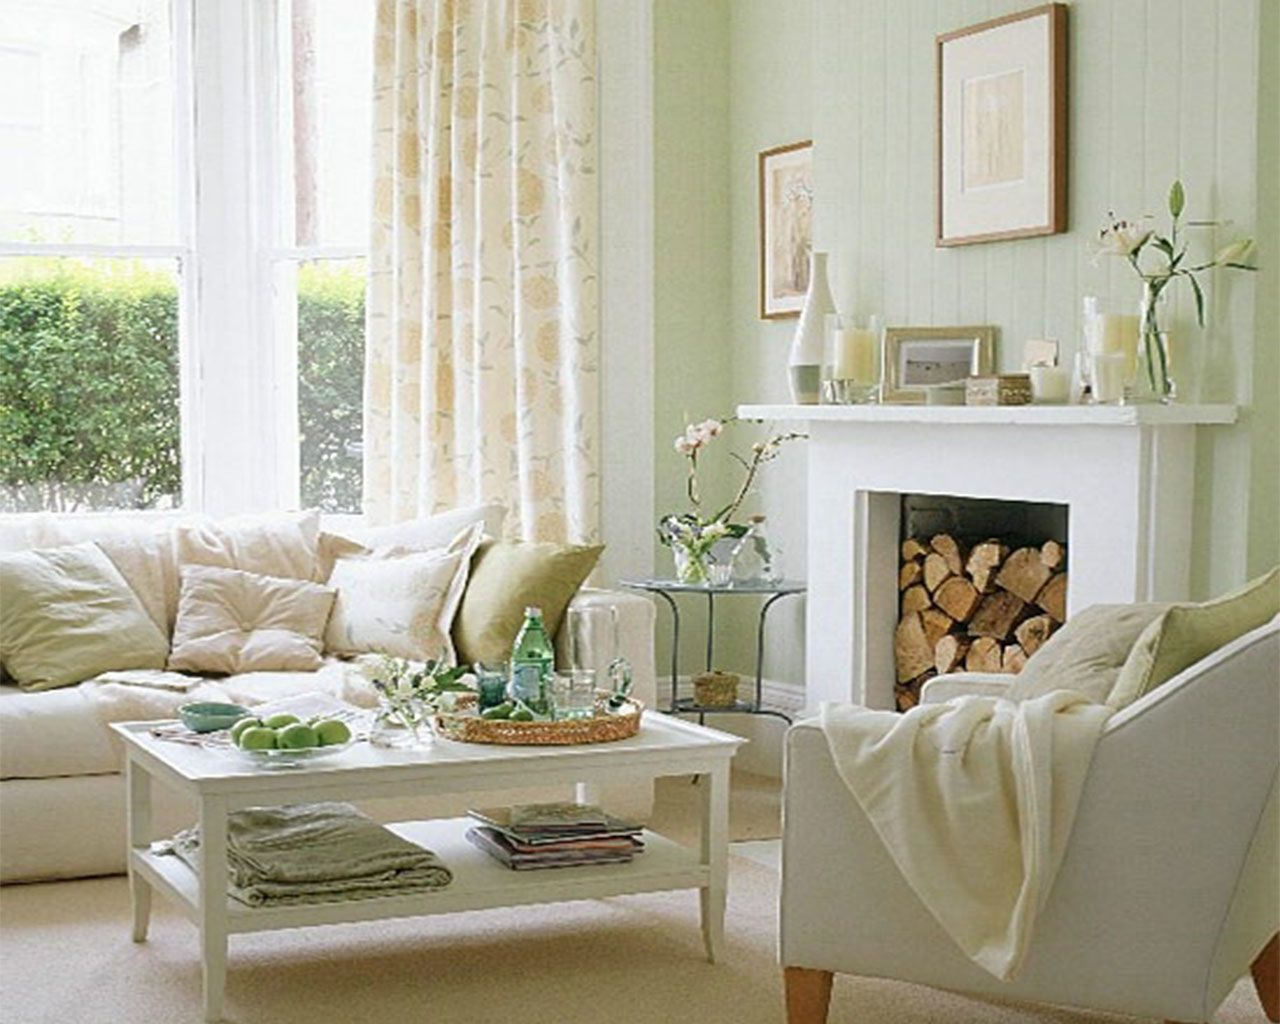 Best Creamy White Living Room With Accents Of Very Light Green And Blue Spring Living Room Pastel 400 x 300